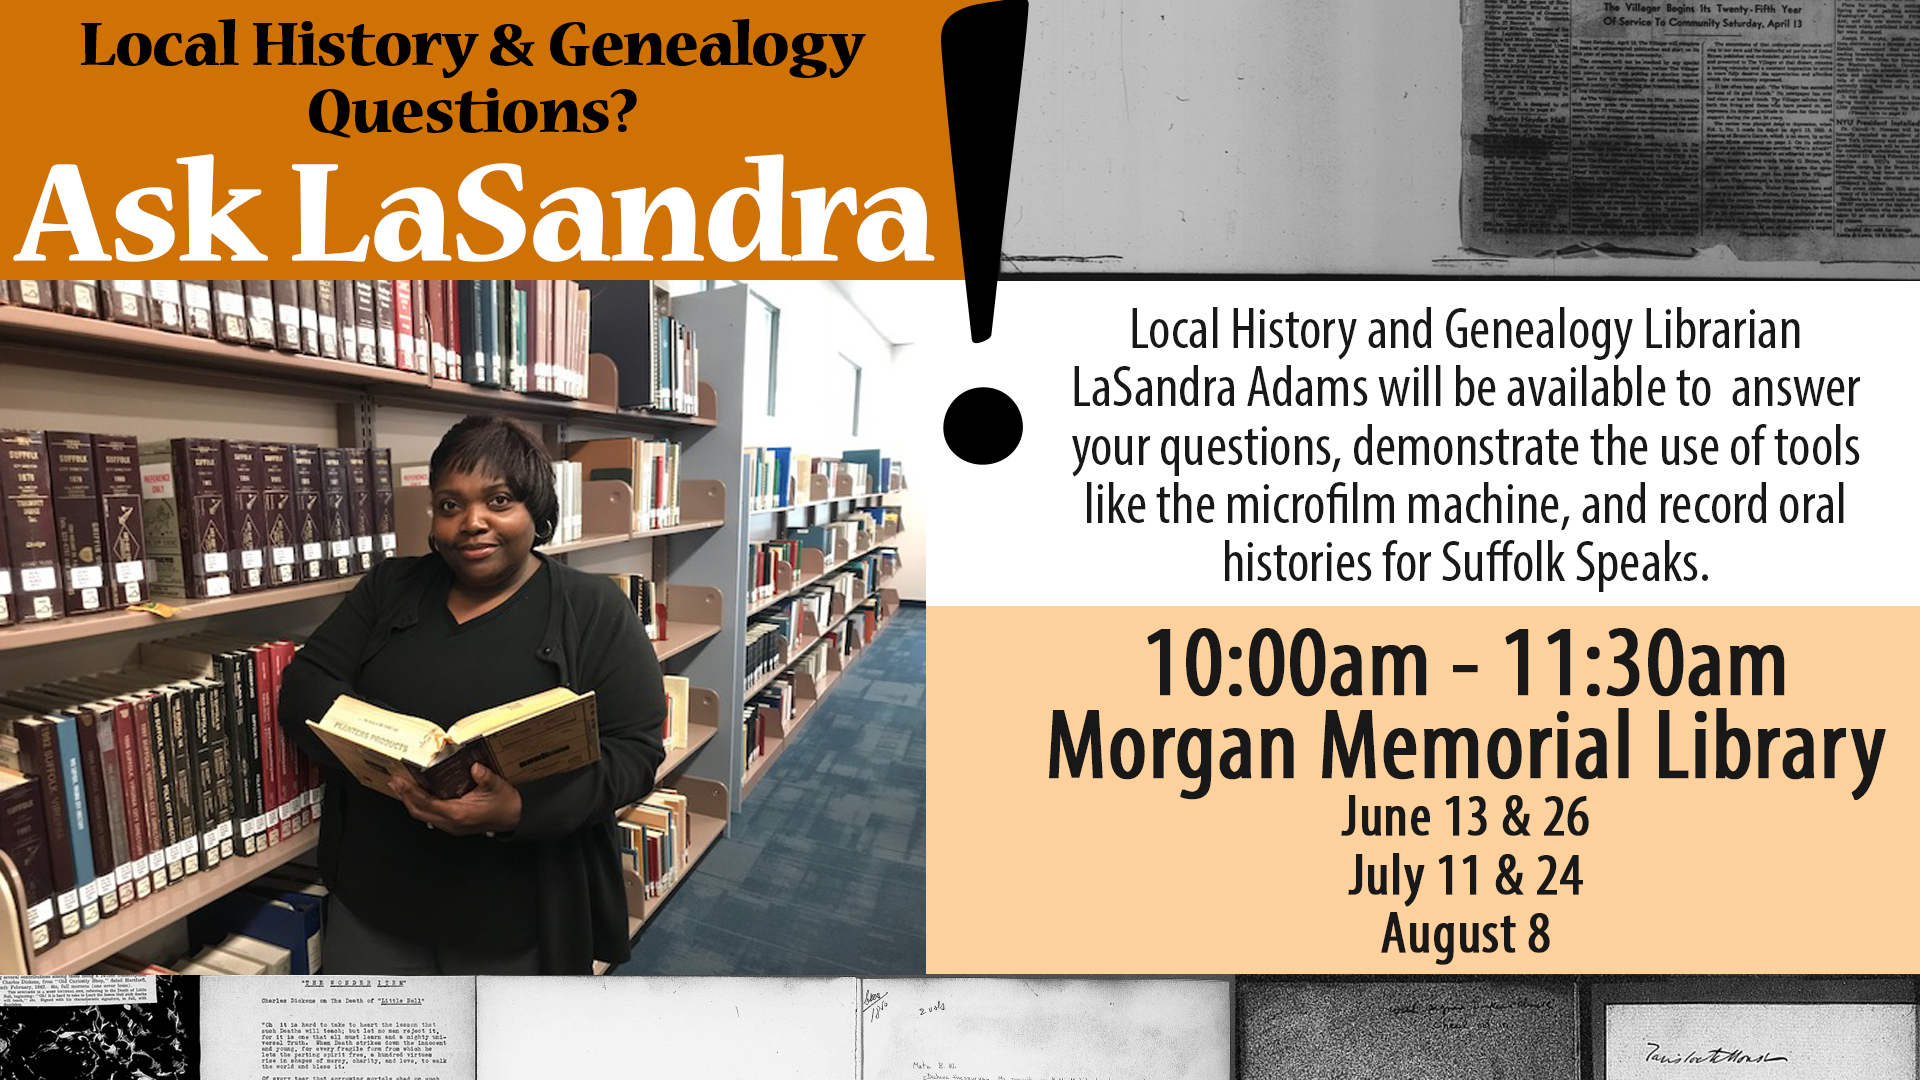 Local History and Genealogy Questions? Ask LaSandra!